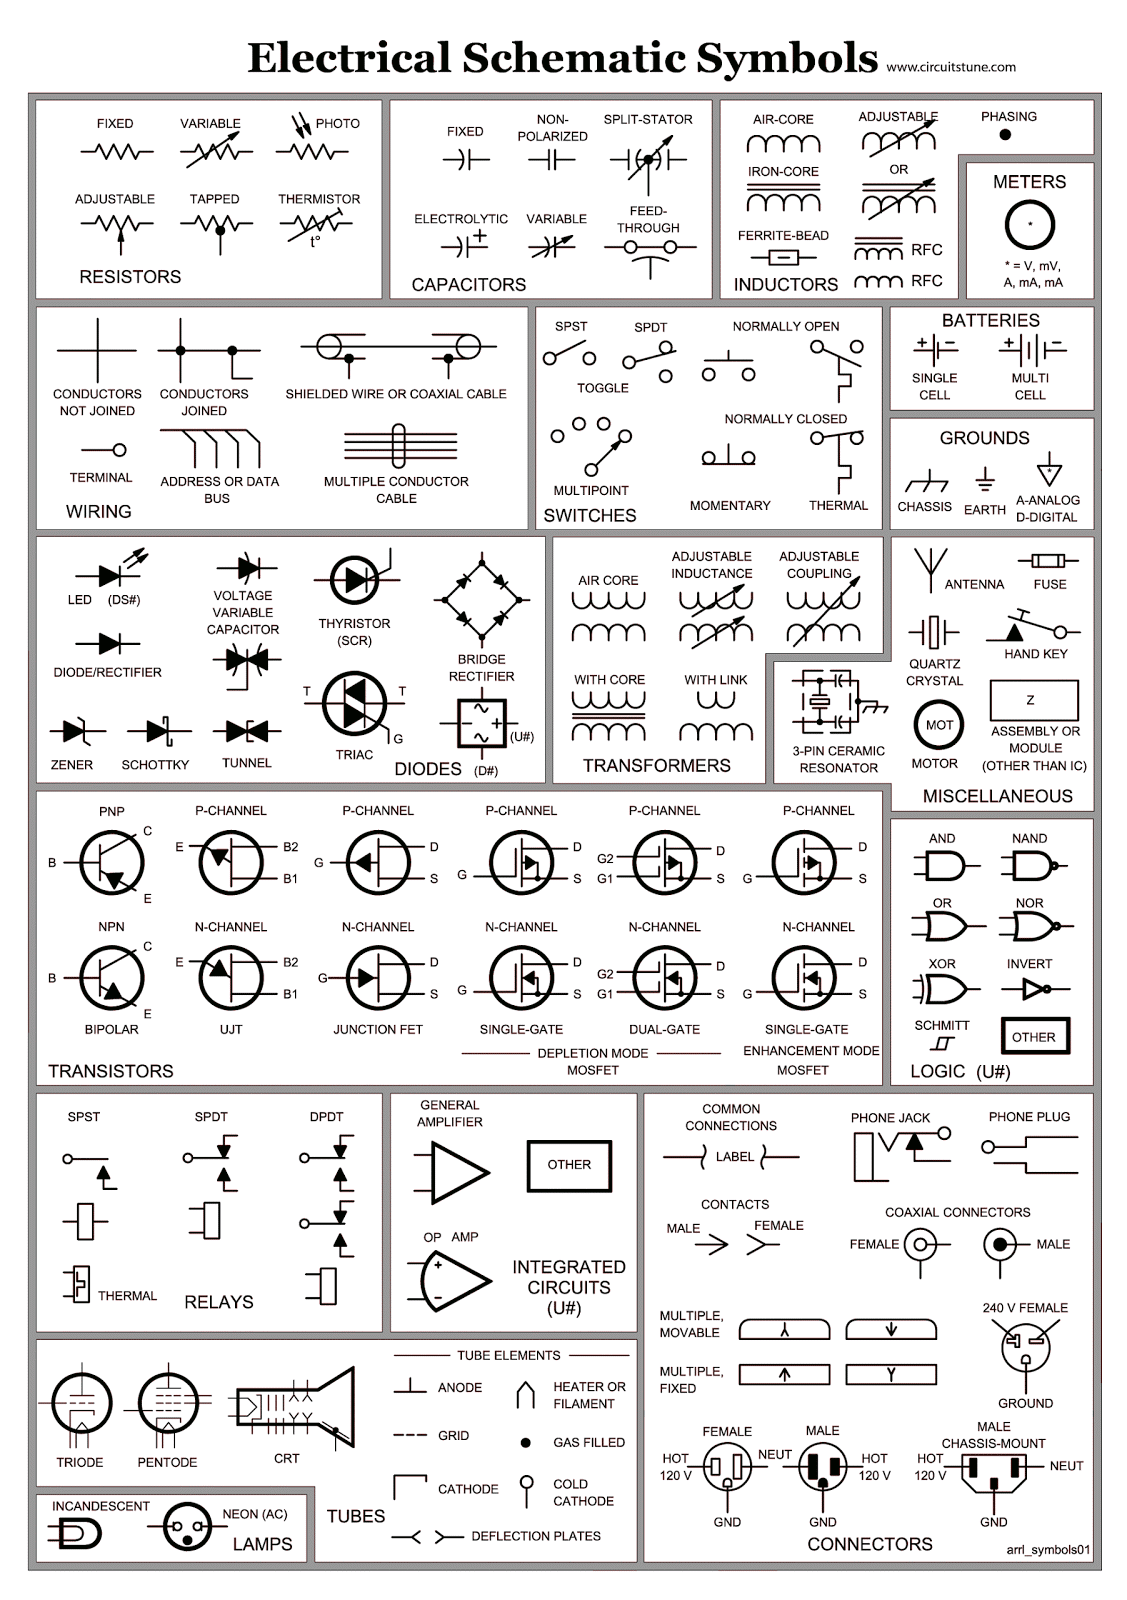 Ford Wiring Diagram Symbols Free Download Schematic also 2003 Gmc Envoy Blower Motor Resistor Location together with 93 Chevy Caprice Wiring Diagram together with 151545279603 together with Page2. on hvac fuse box